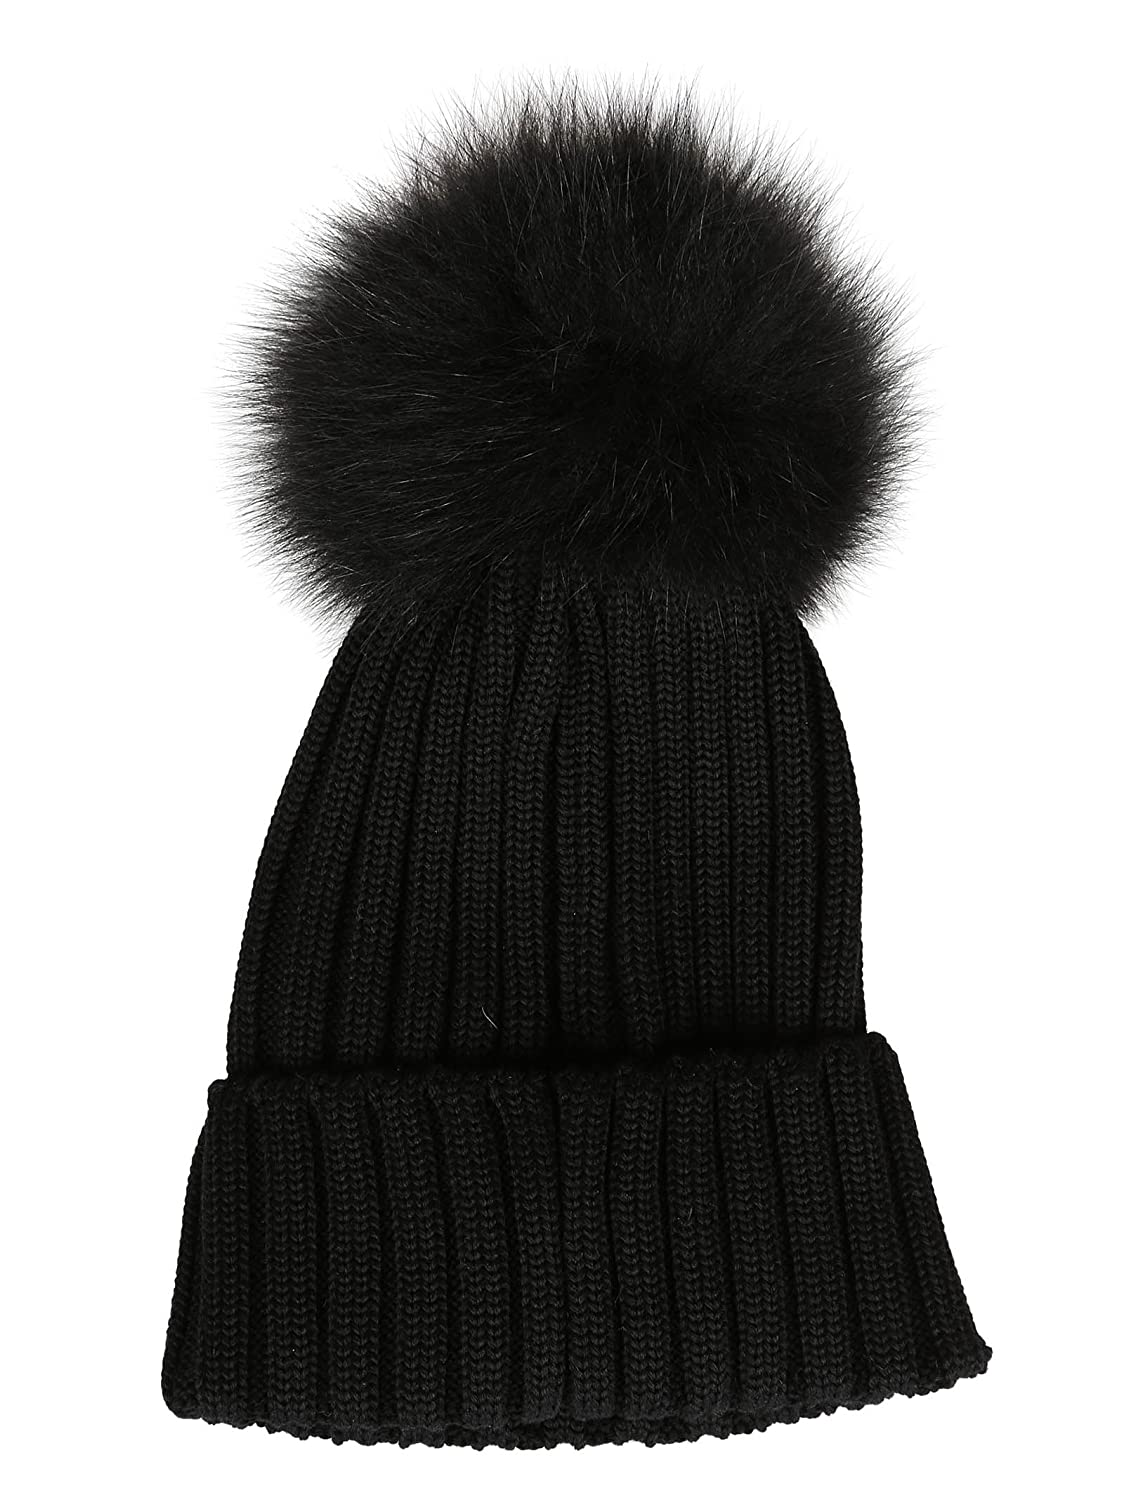 Moncler Women's 002190003510999 Black Wool Hat: Amazon.ca: Sports & Outdoors